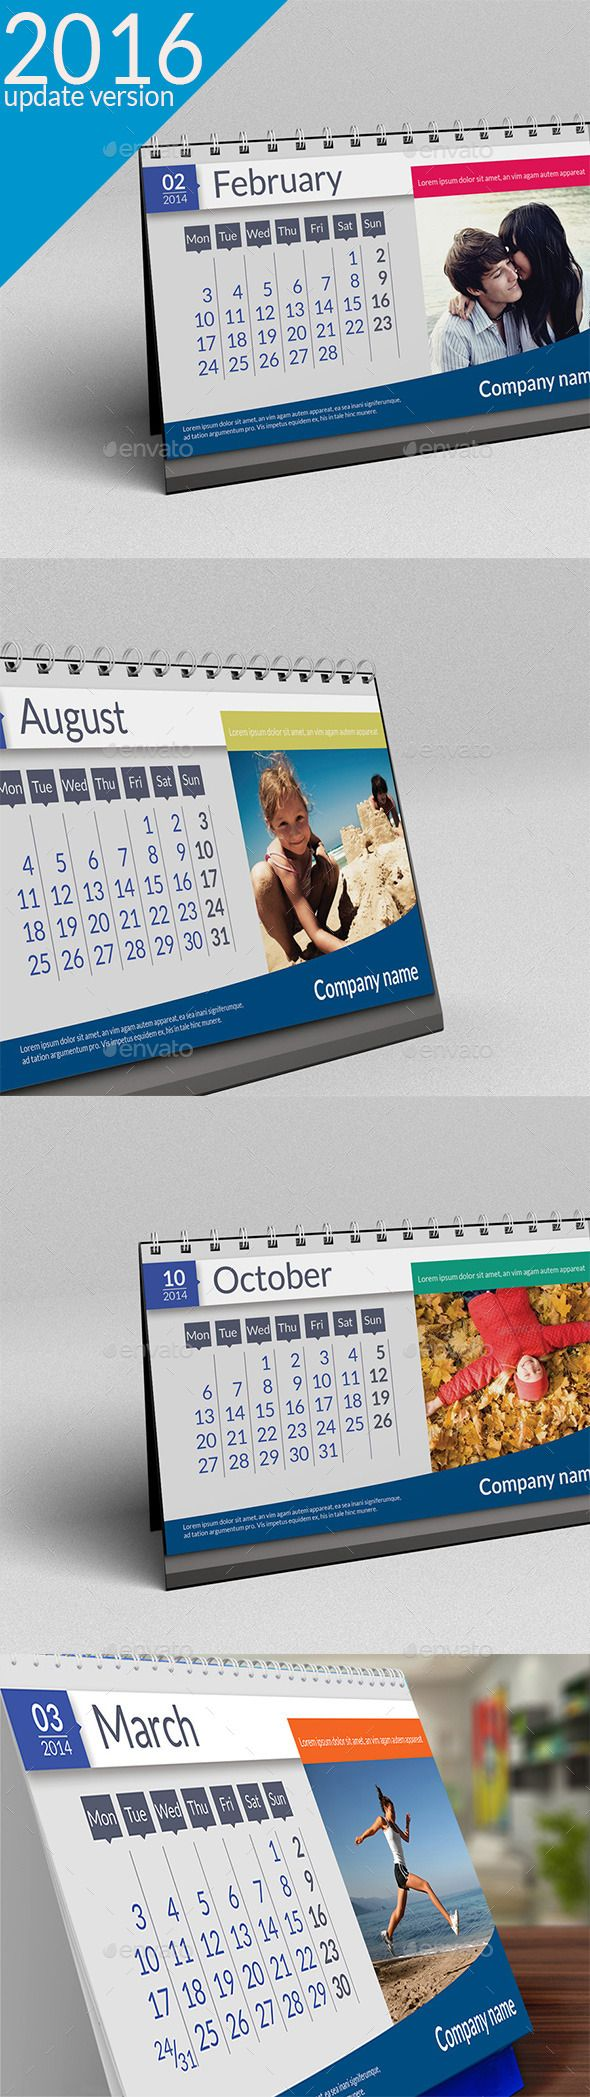 Desk Calendar 2016 Excellent desk calendar 2016-files are updated! File include:15 PSD editablefiles (1 PSD  first page, 2 PSD fil